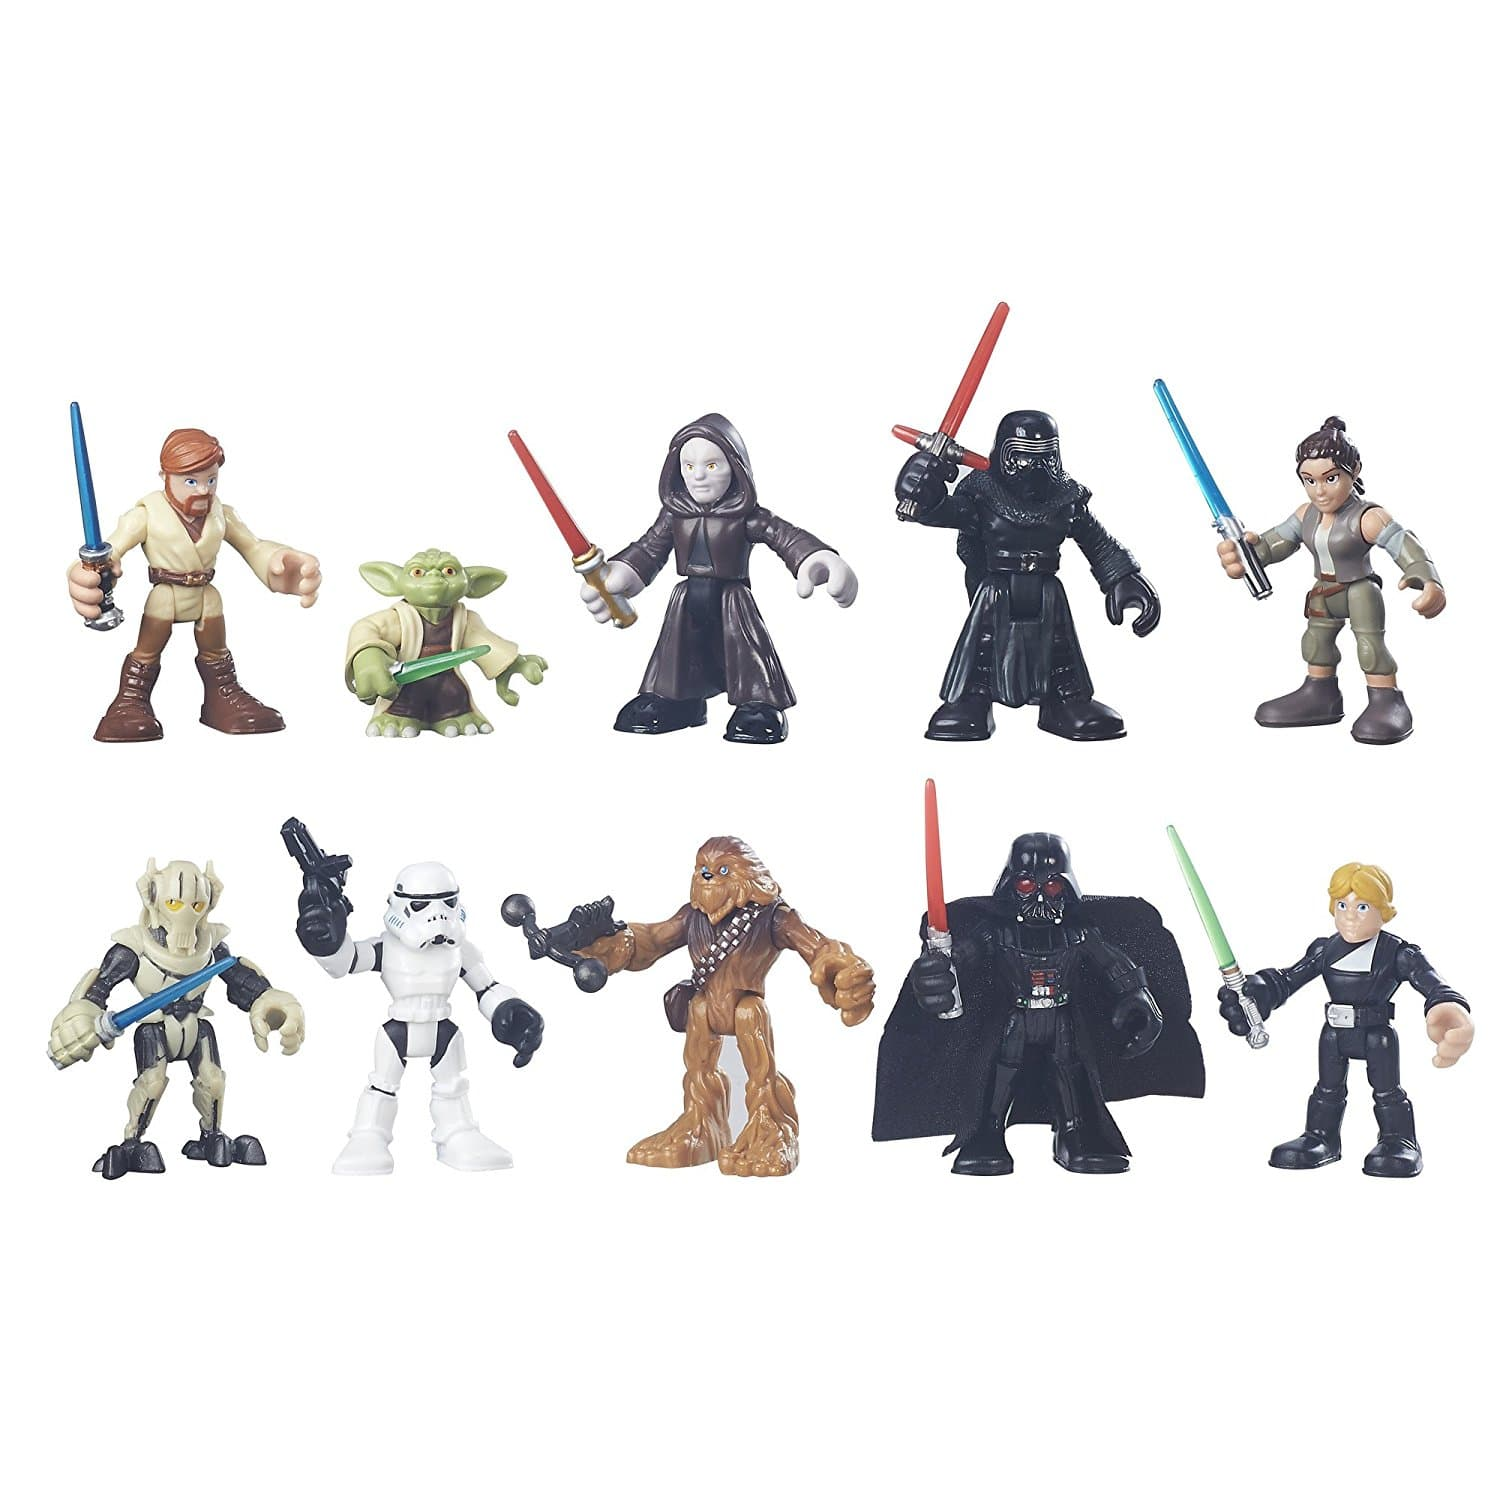 These Star Wars gifts are perfect for young kids